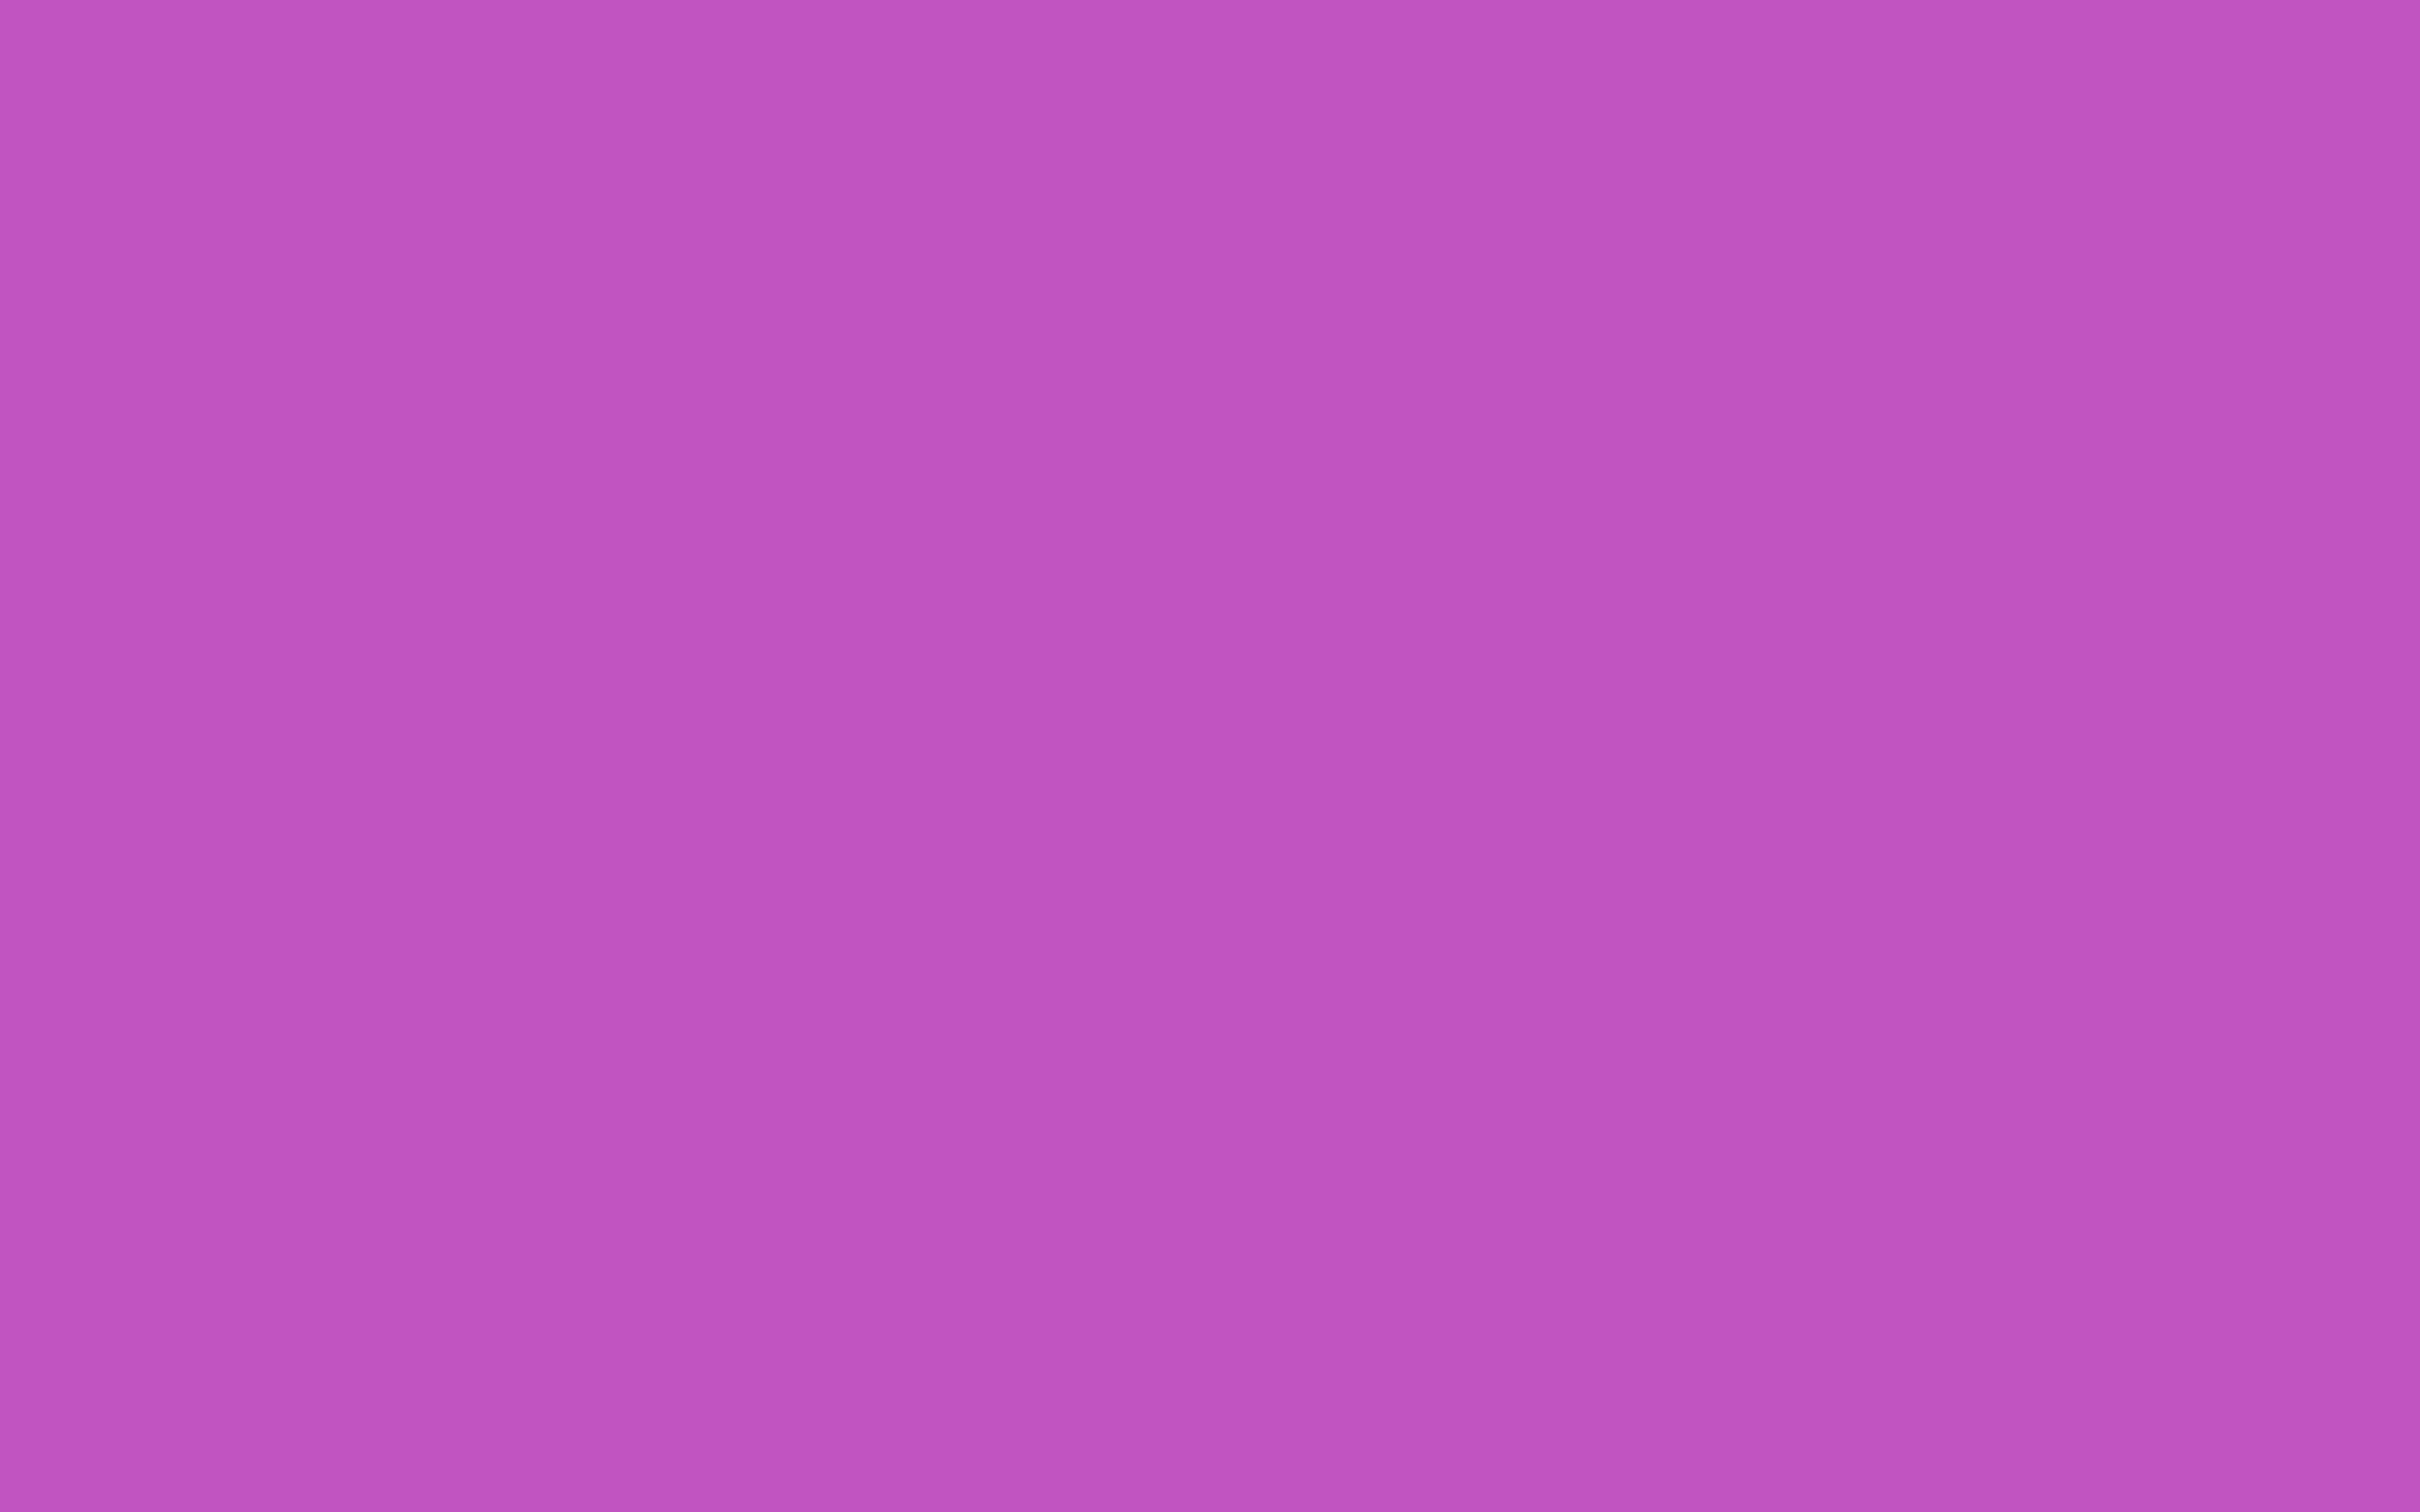 2560x1600 Deep Fuchsia Solid Color Background